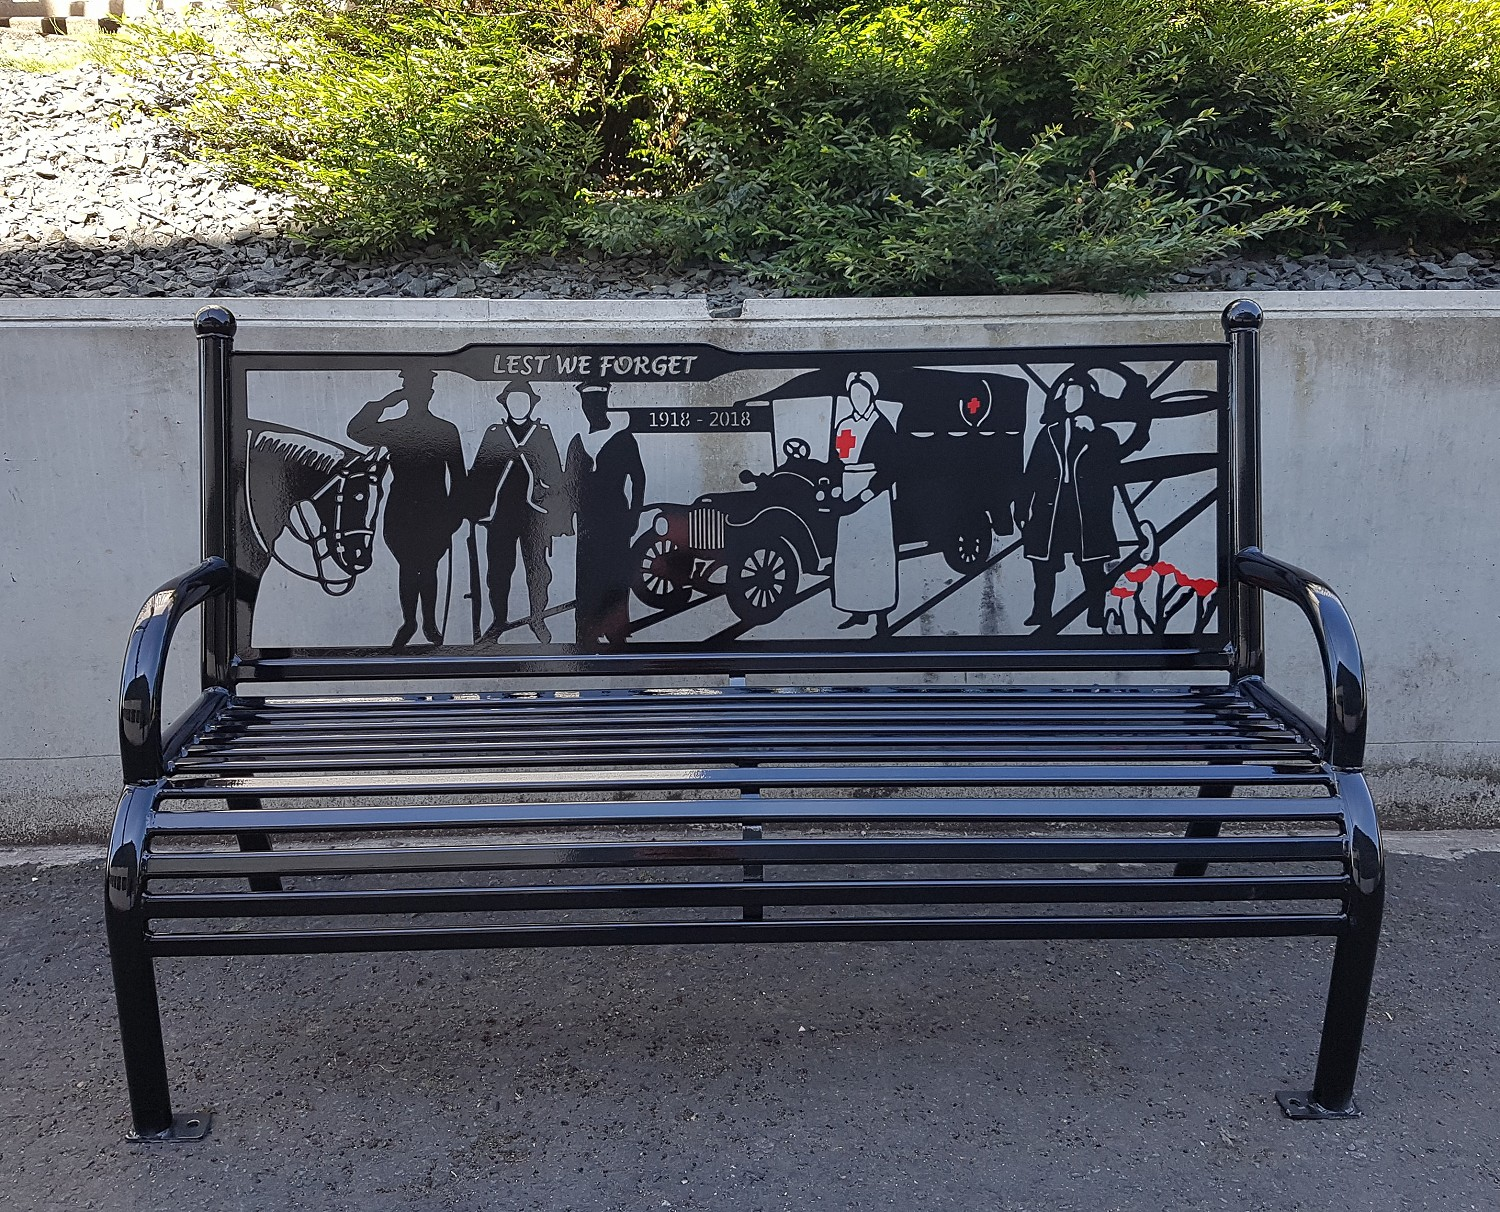 Armed Forces Bench Seat 183 David Ogilvie Engineering